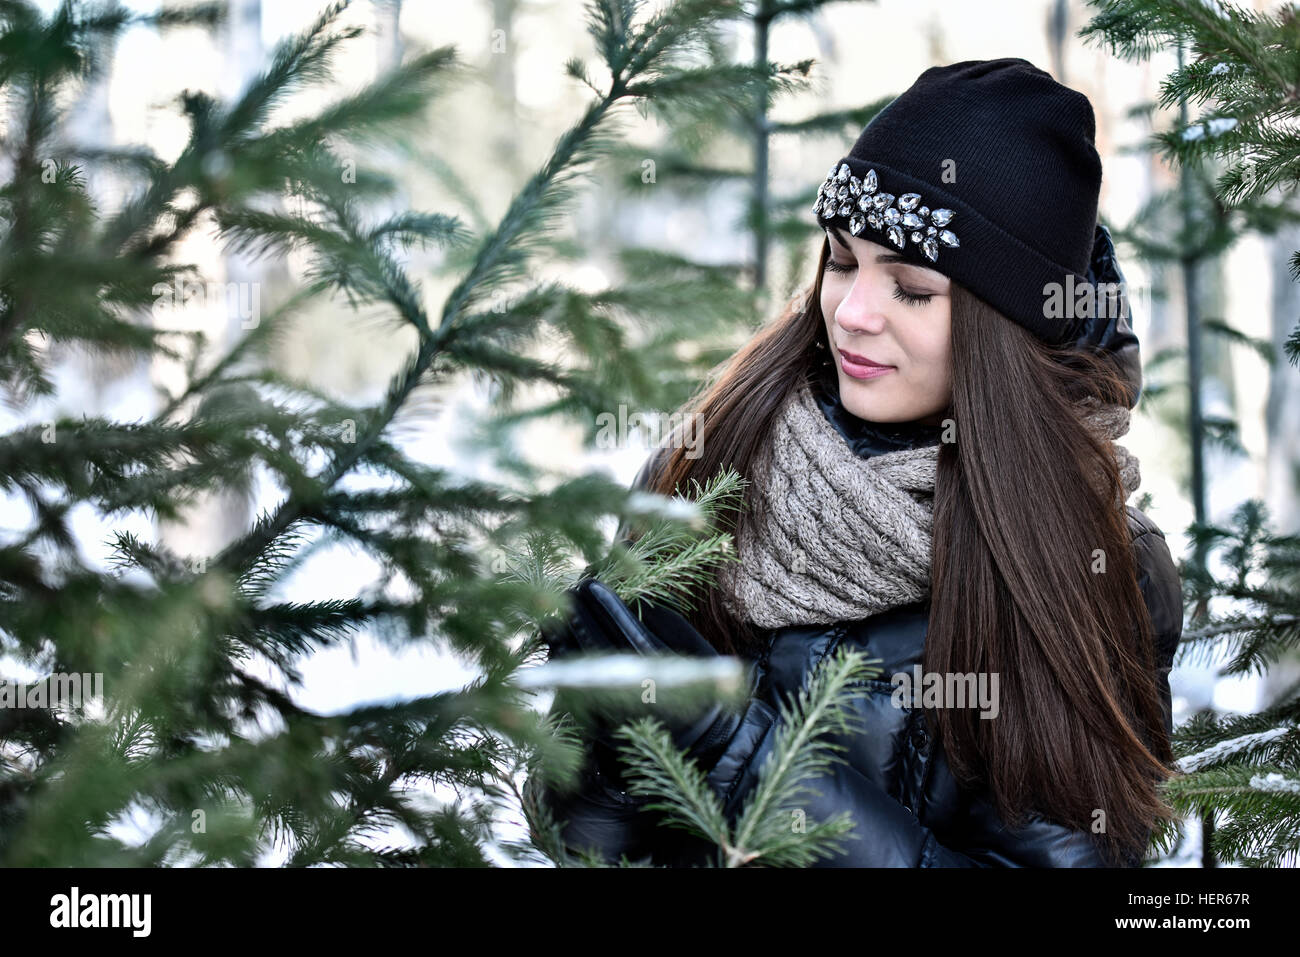 The girl with dark long hair at the firs in winter park - Stock Image